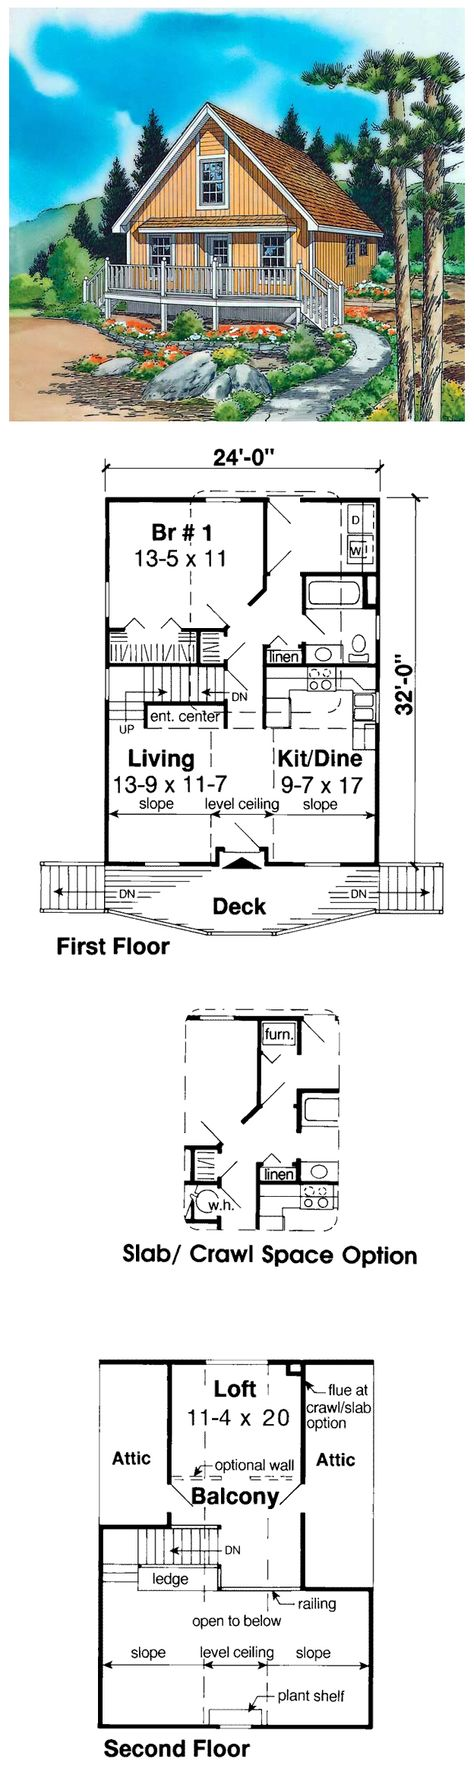 Ikea Couch Bett Huffaker List Of Pinterest Smalle House Plans With Loft Layout Kitchens